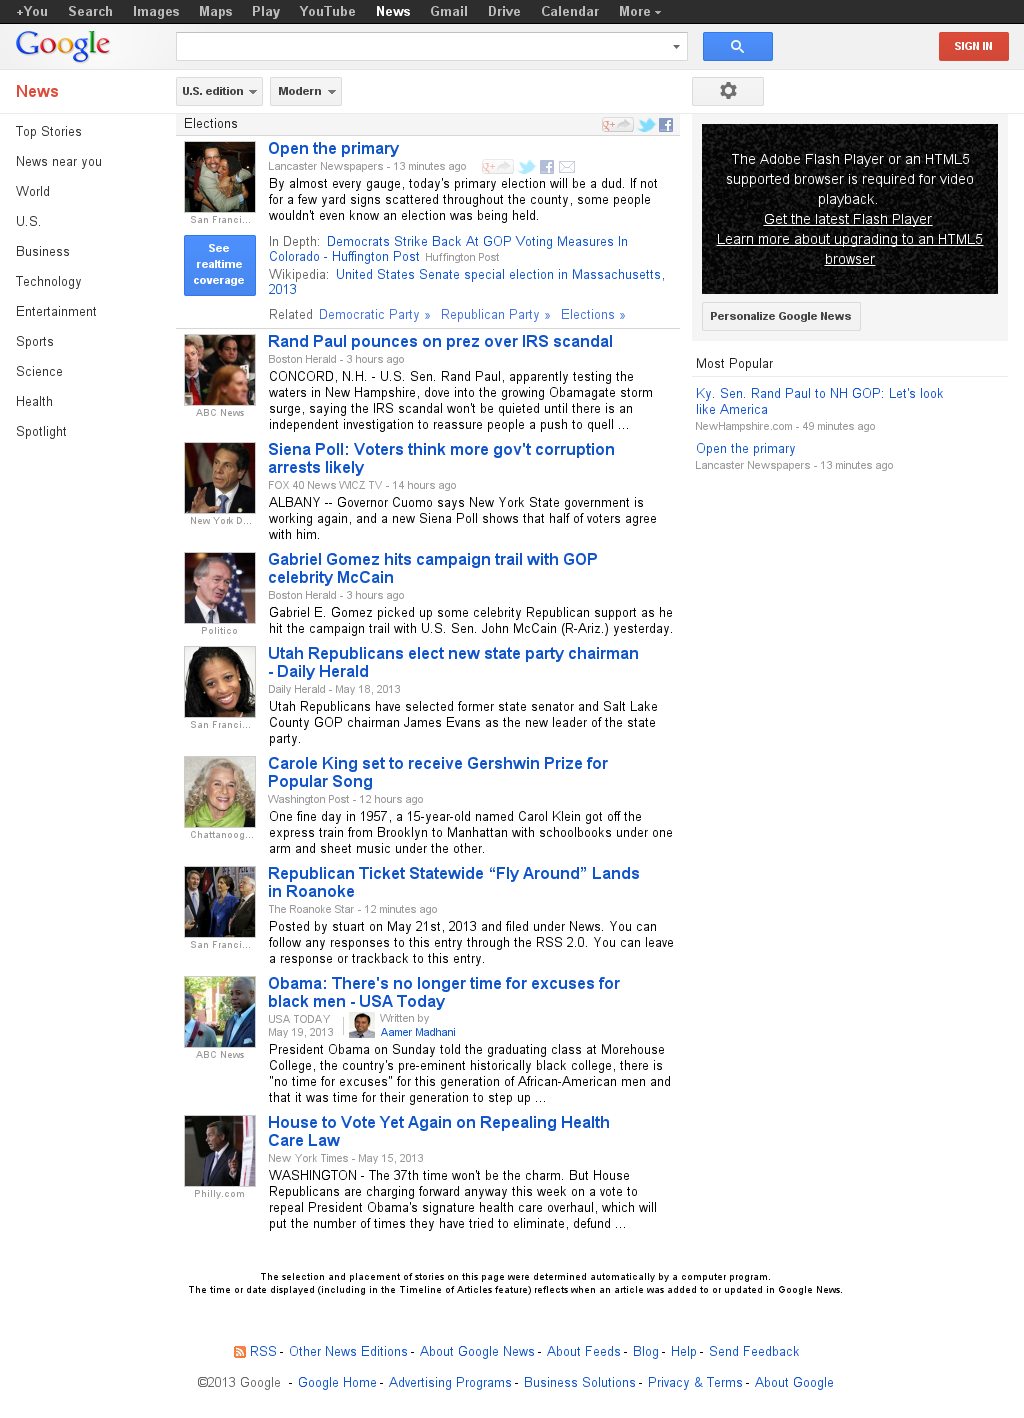 Google News: Elections at Tuesday May 21, 2013, 1:08 p.m. UTC